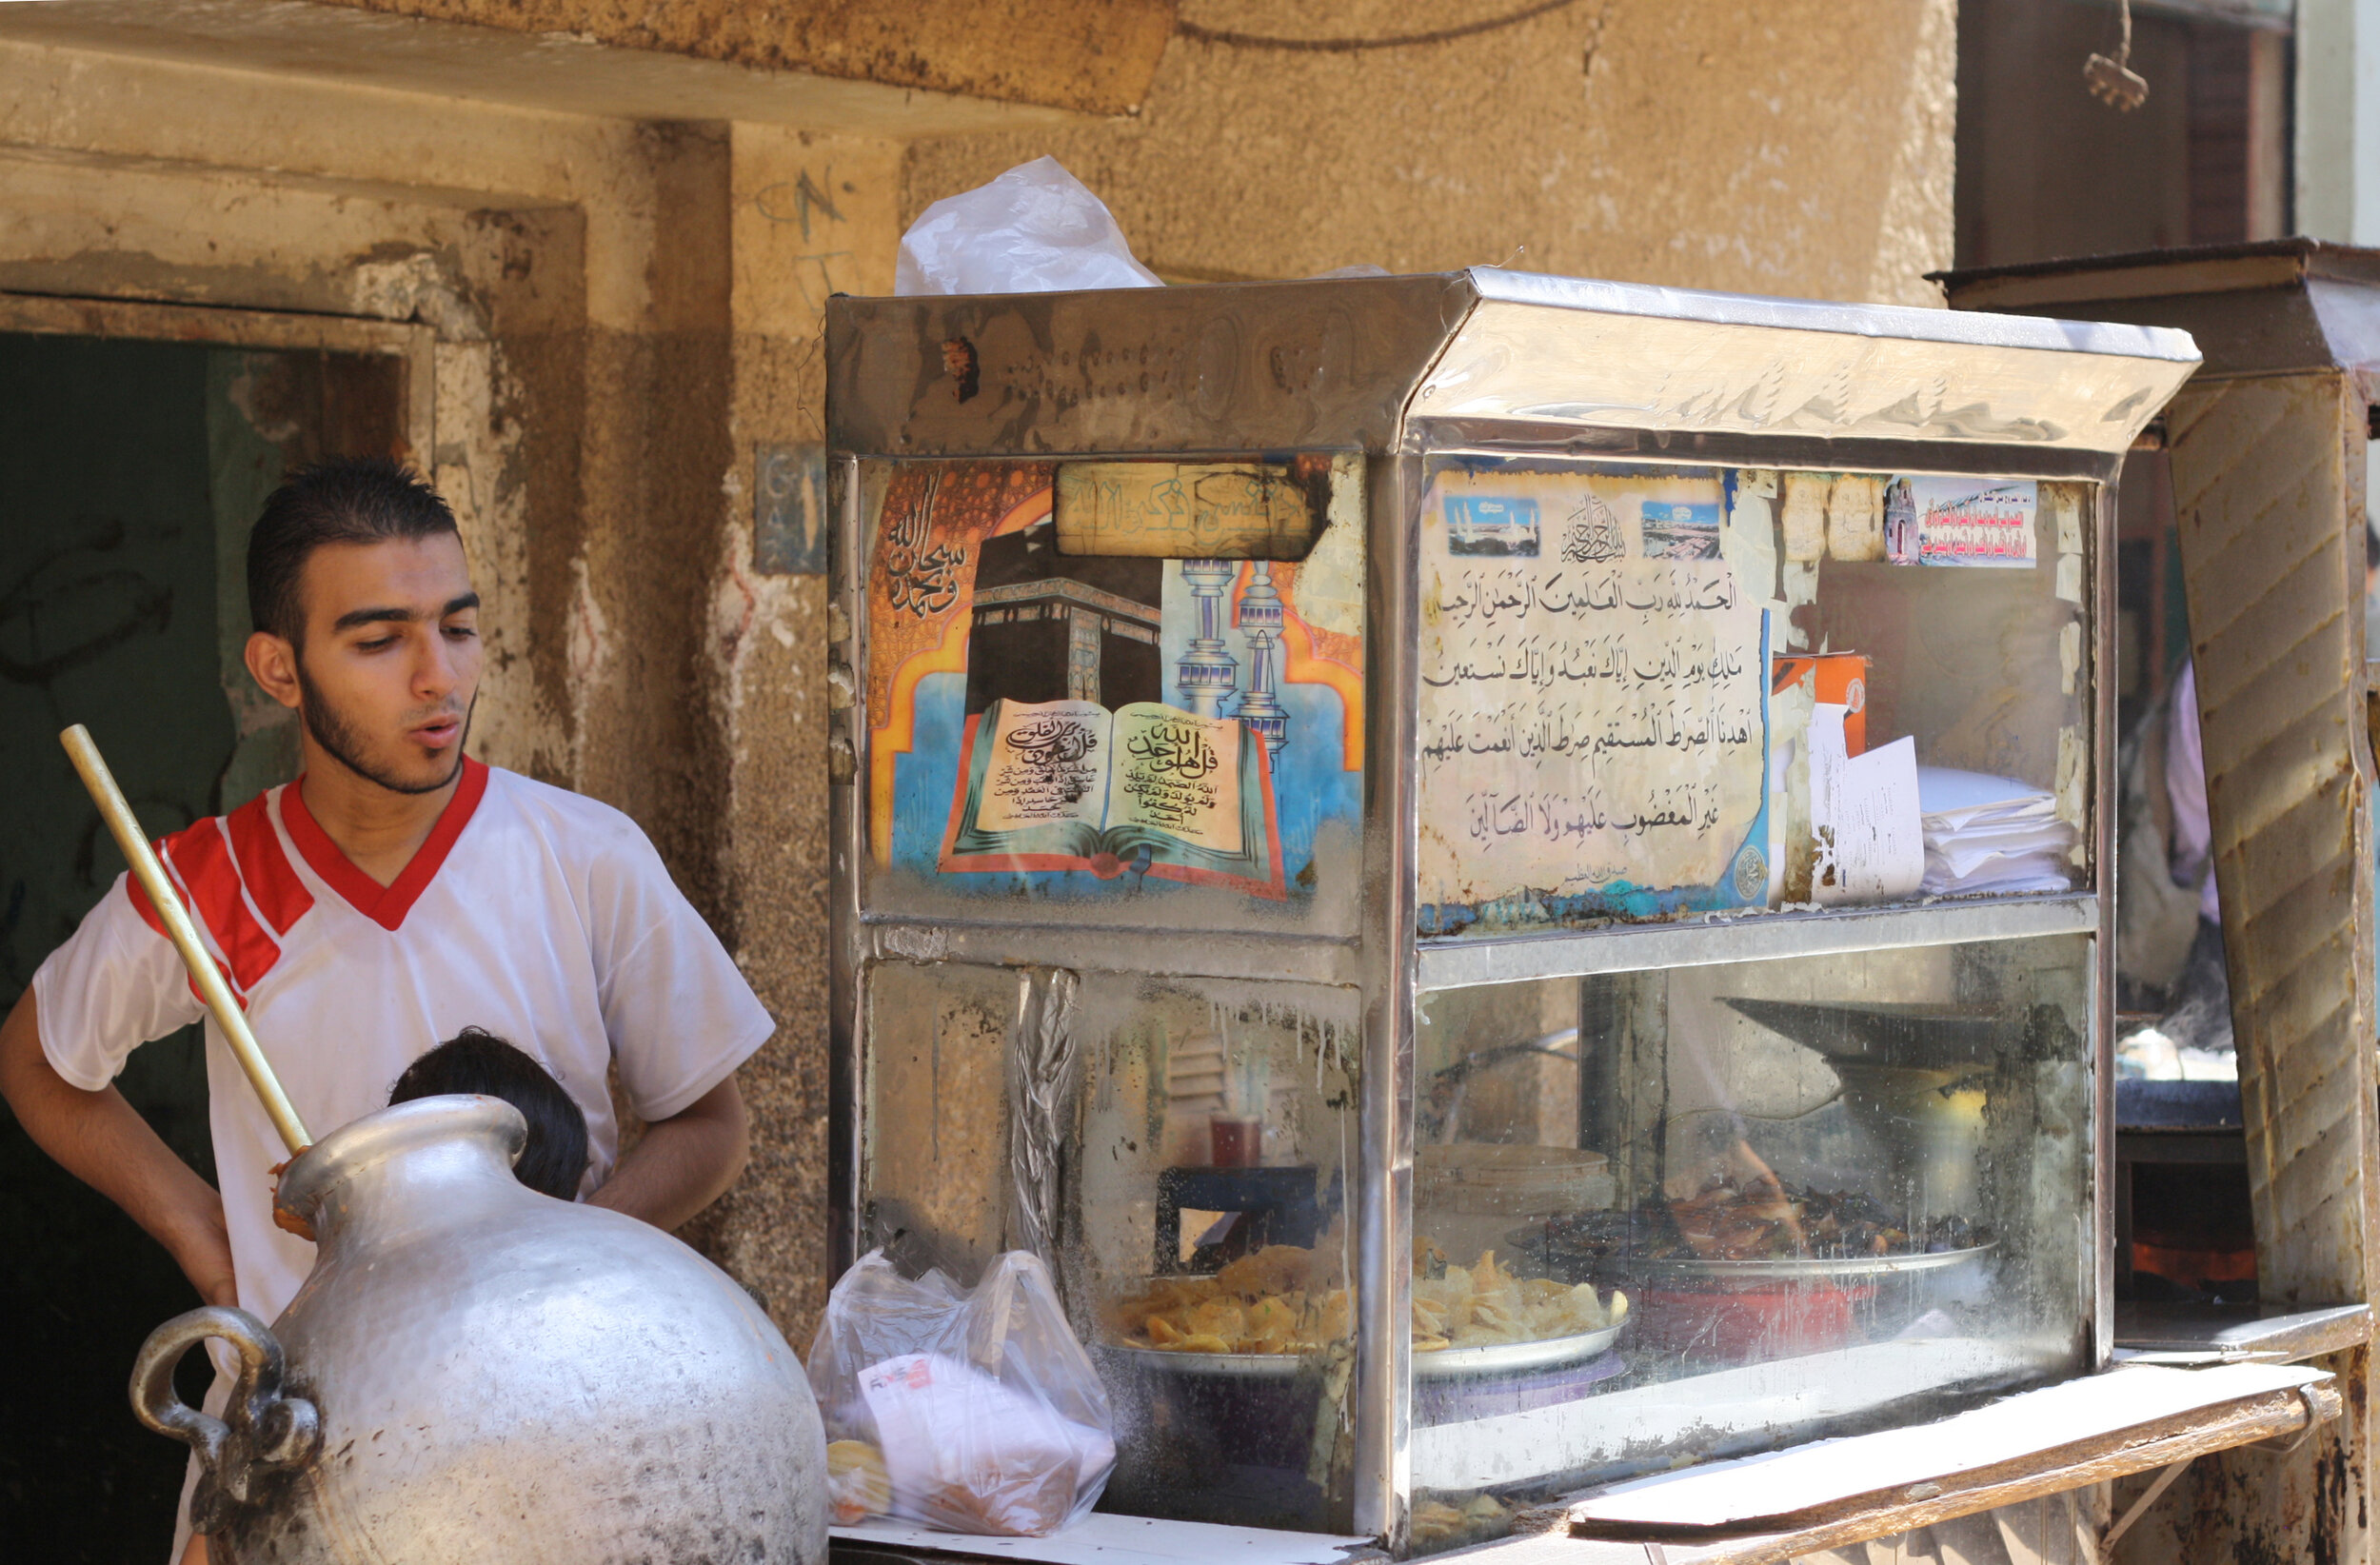 The national dish, ful, served as Egyptian street food from a large silver pot.